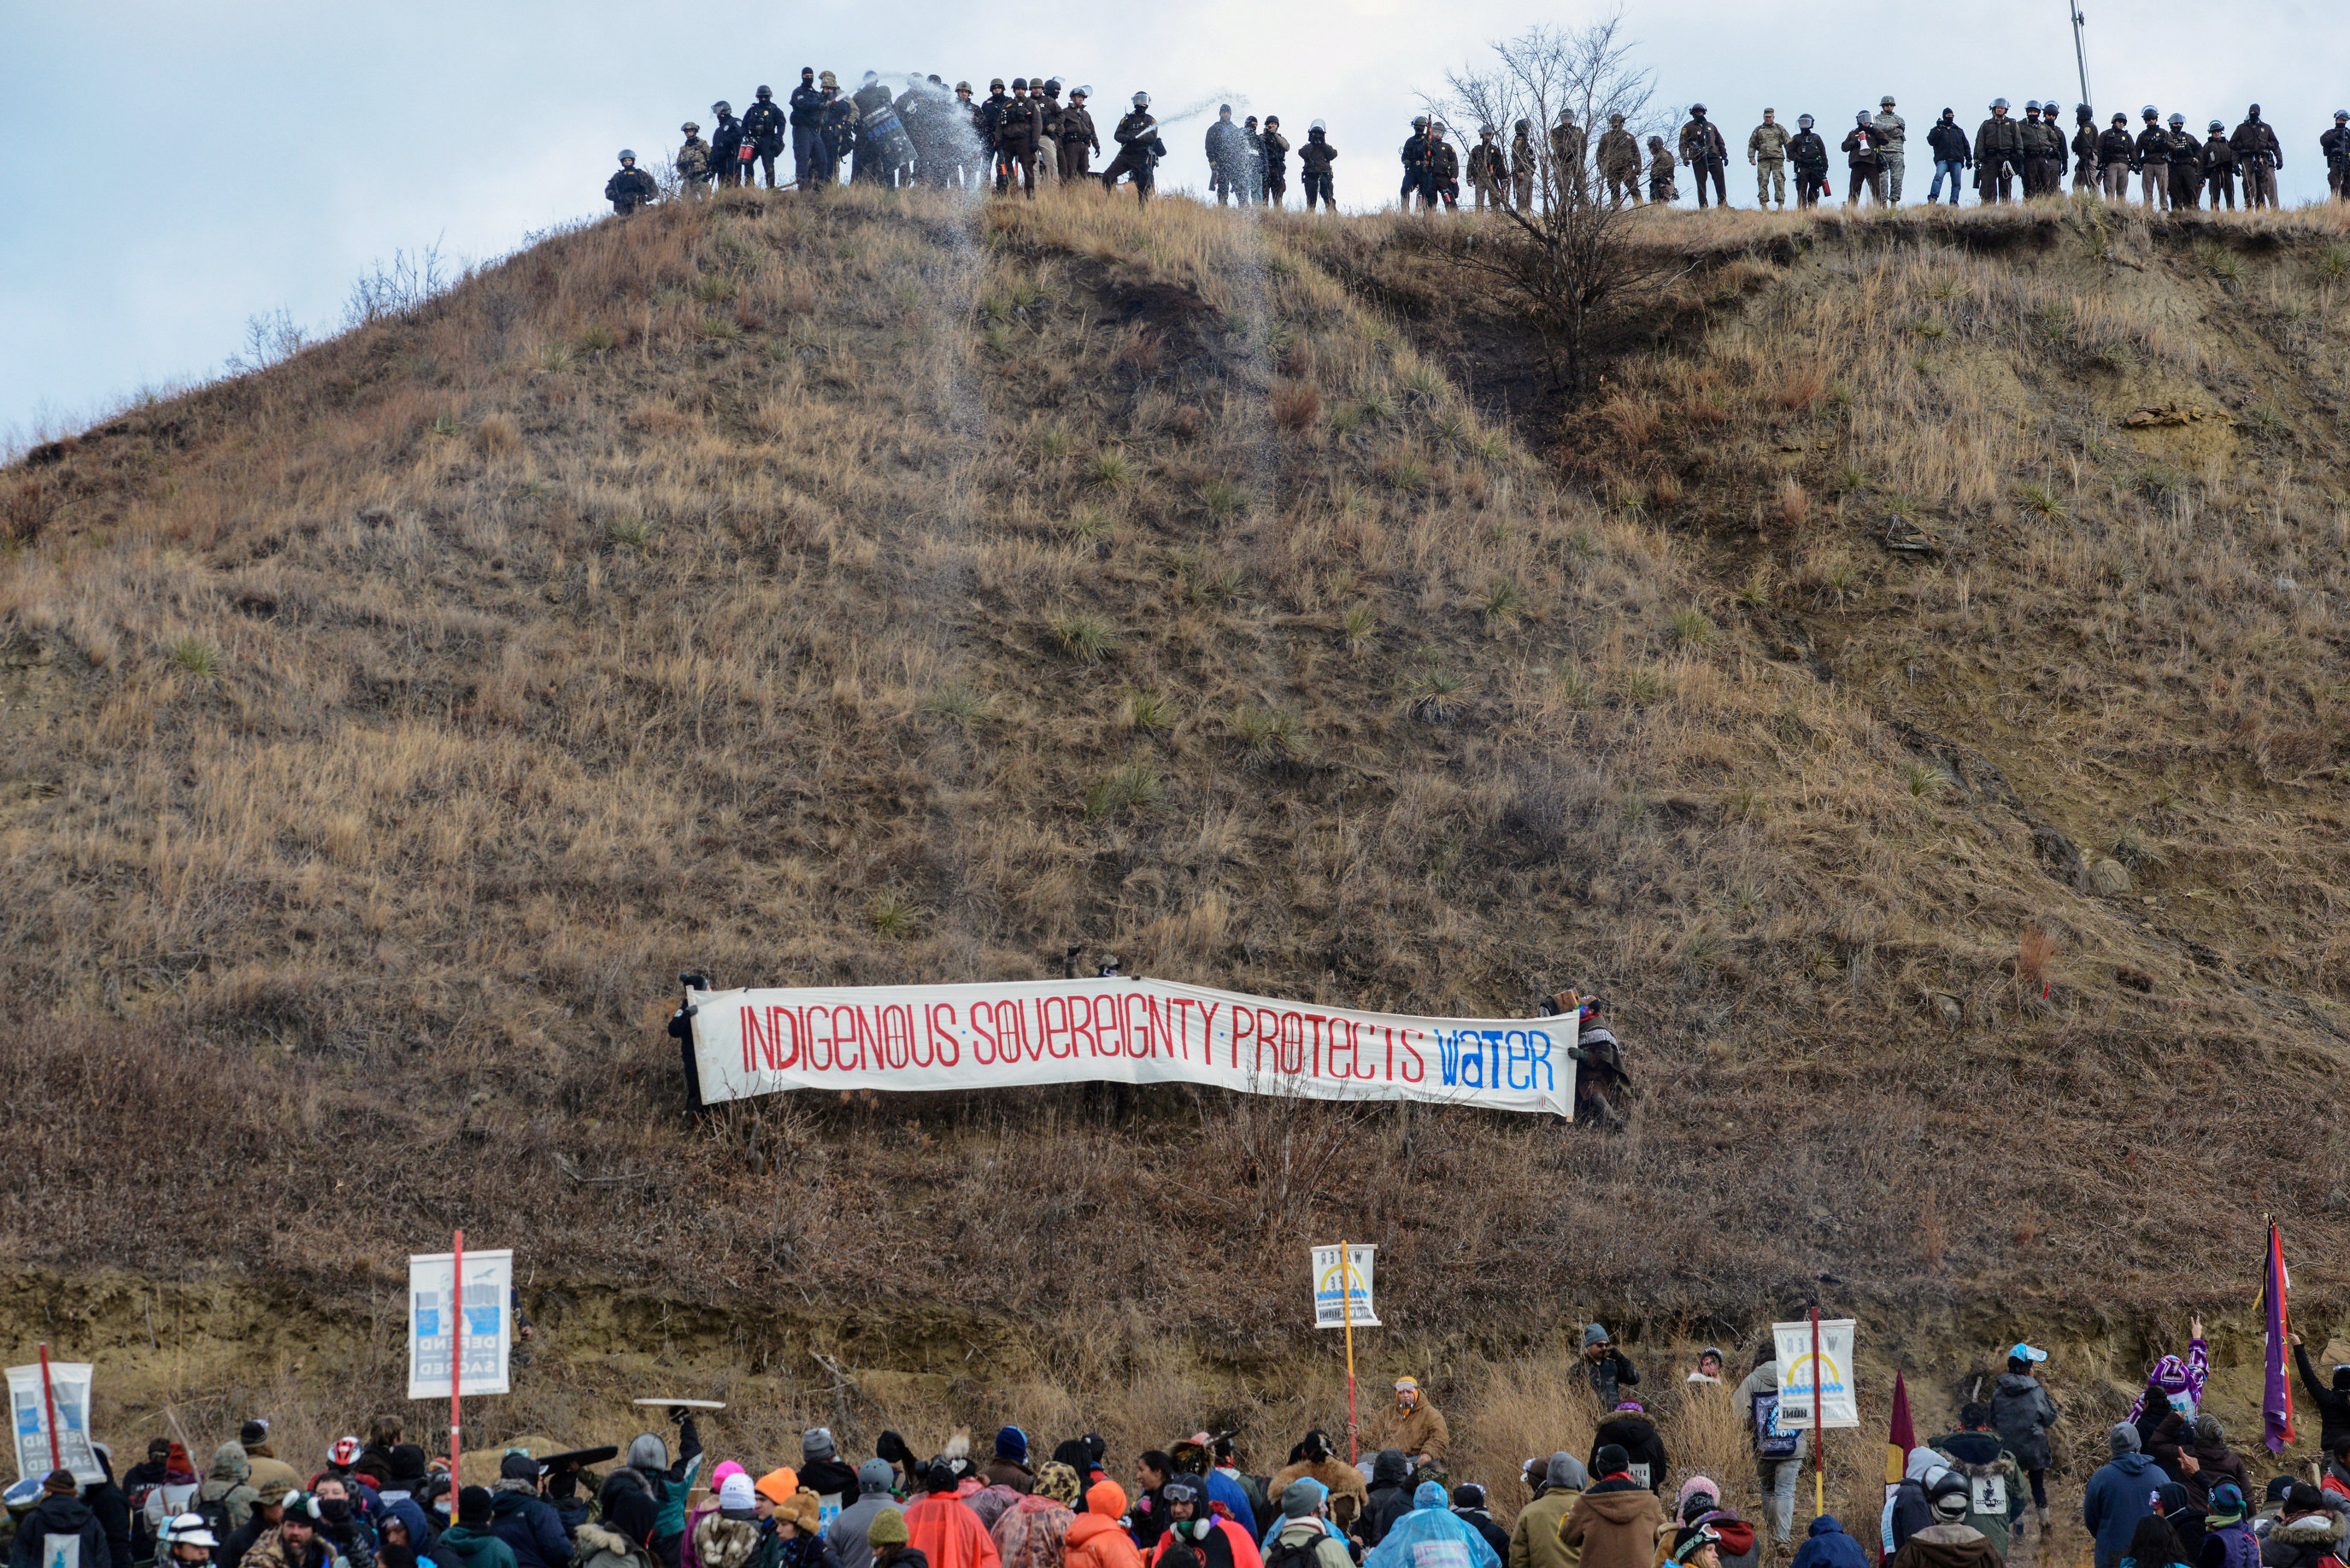 Protesters raise a banner regarding Dakota Access Pipeline